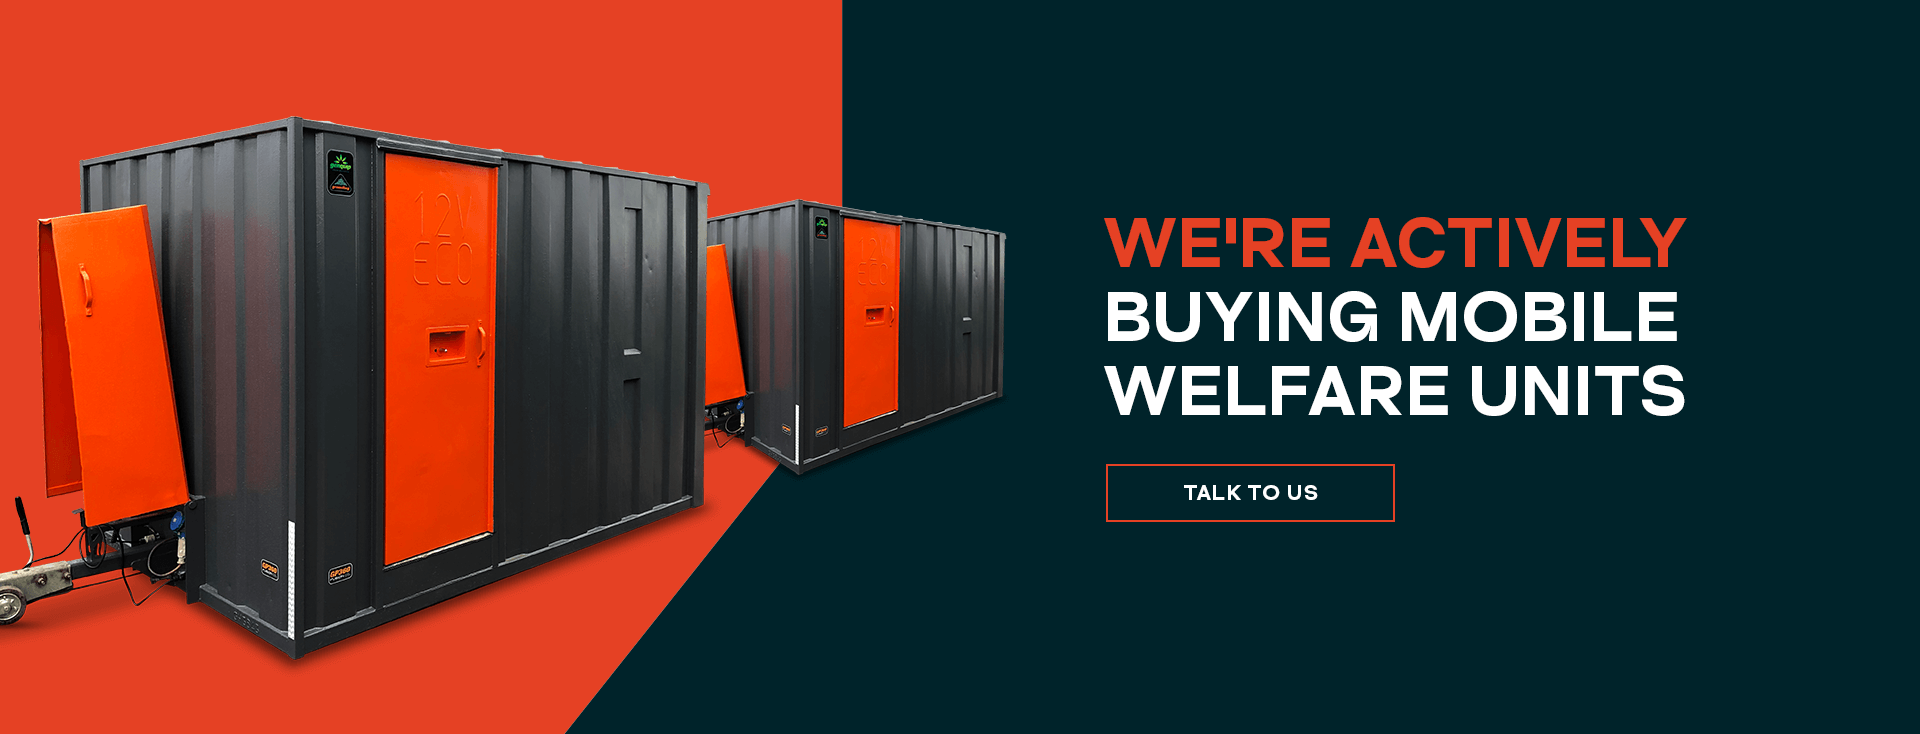 We're actively buying mobile welfare units